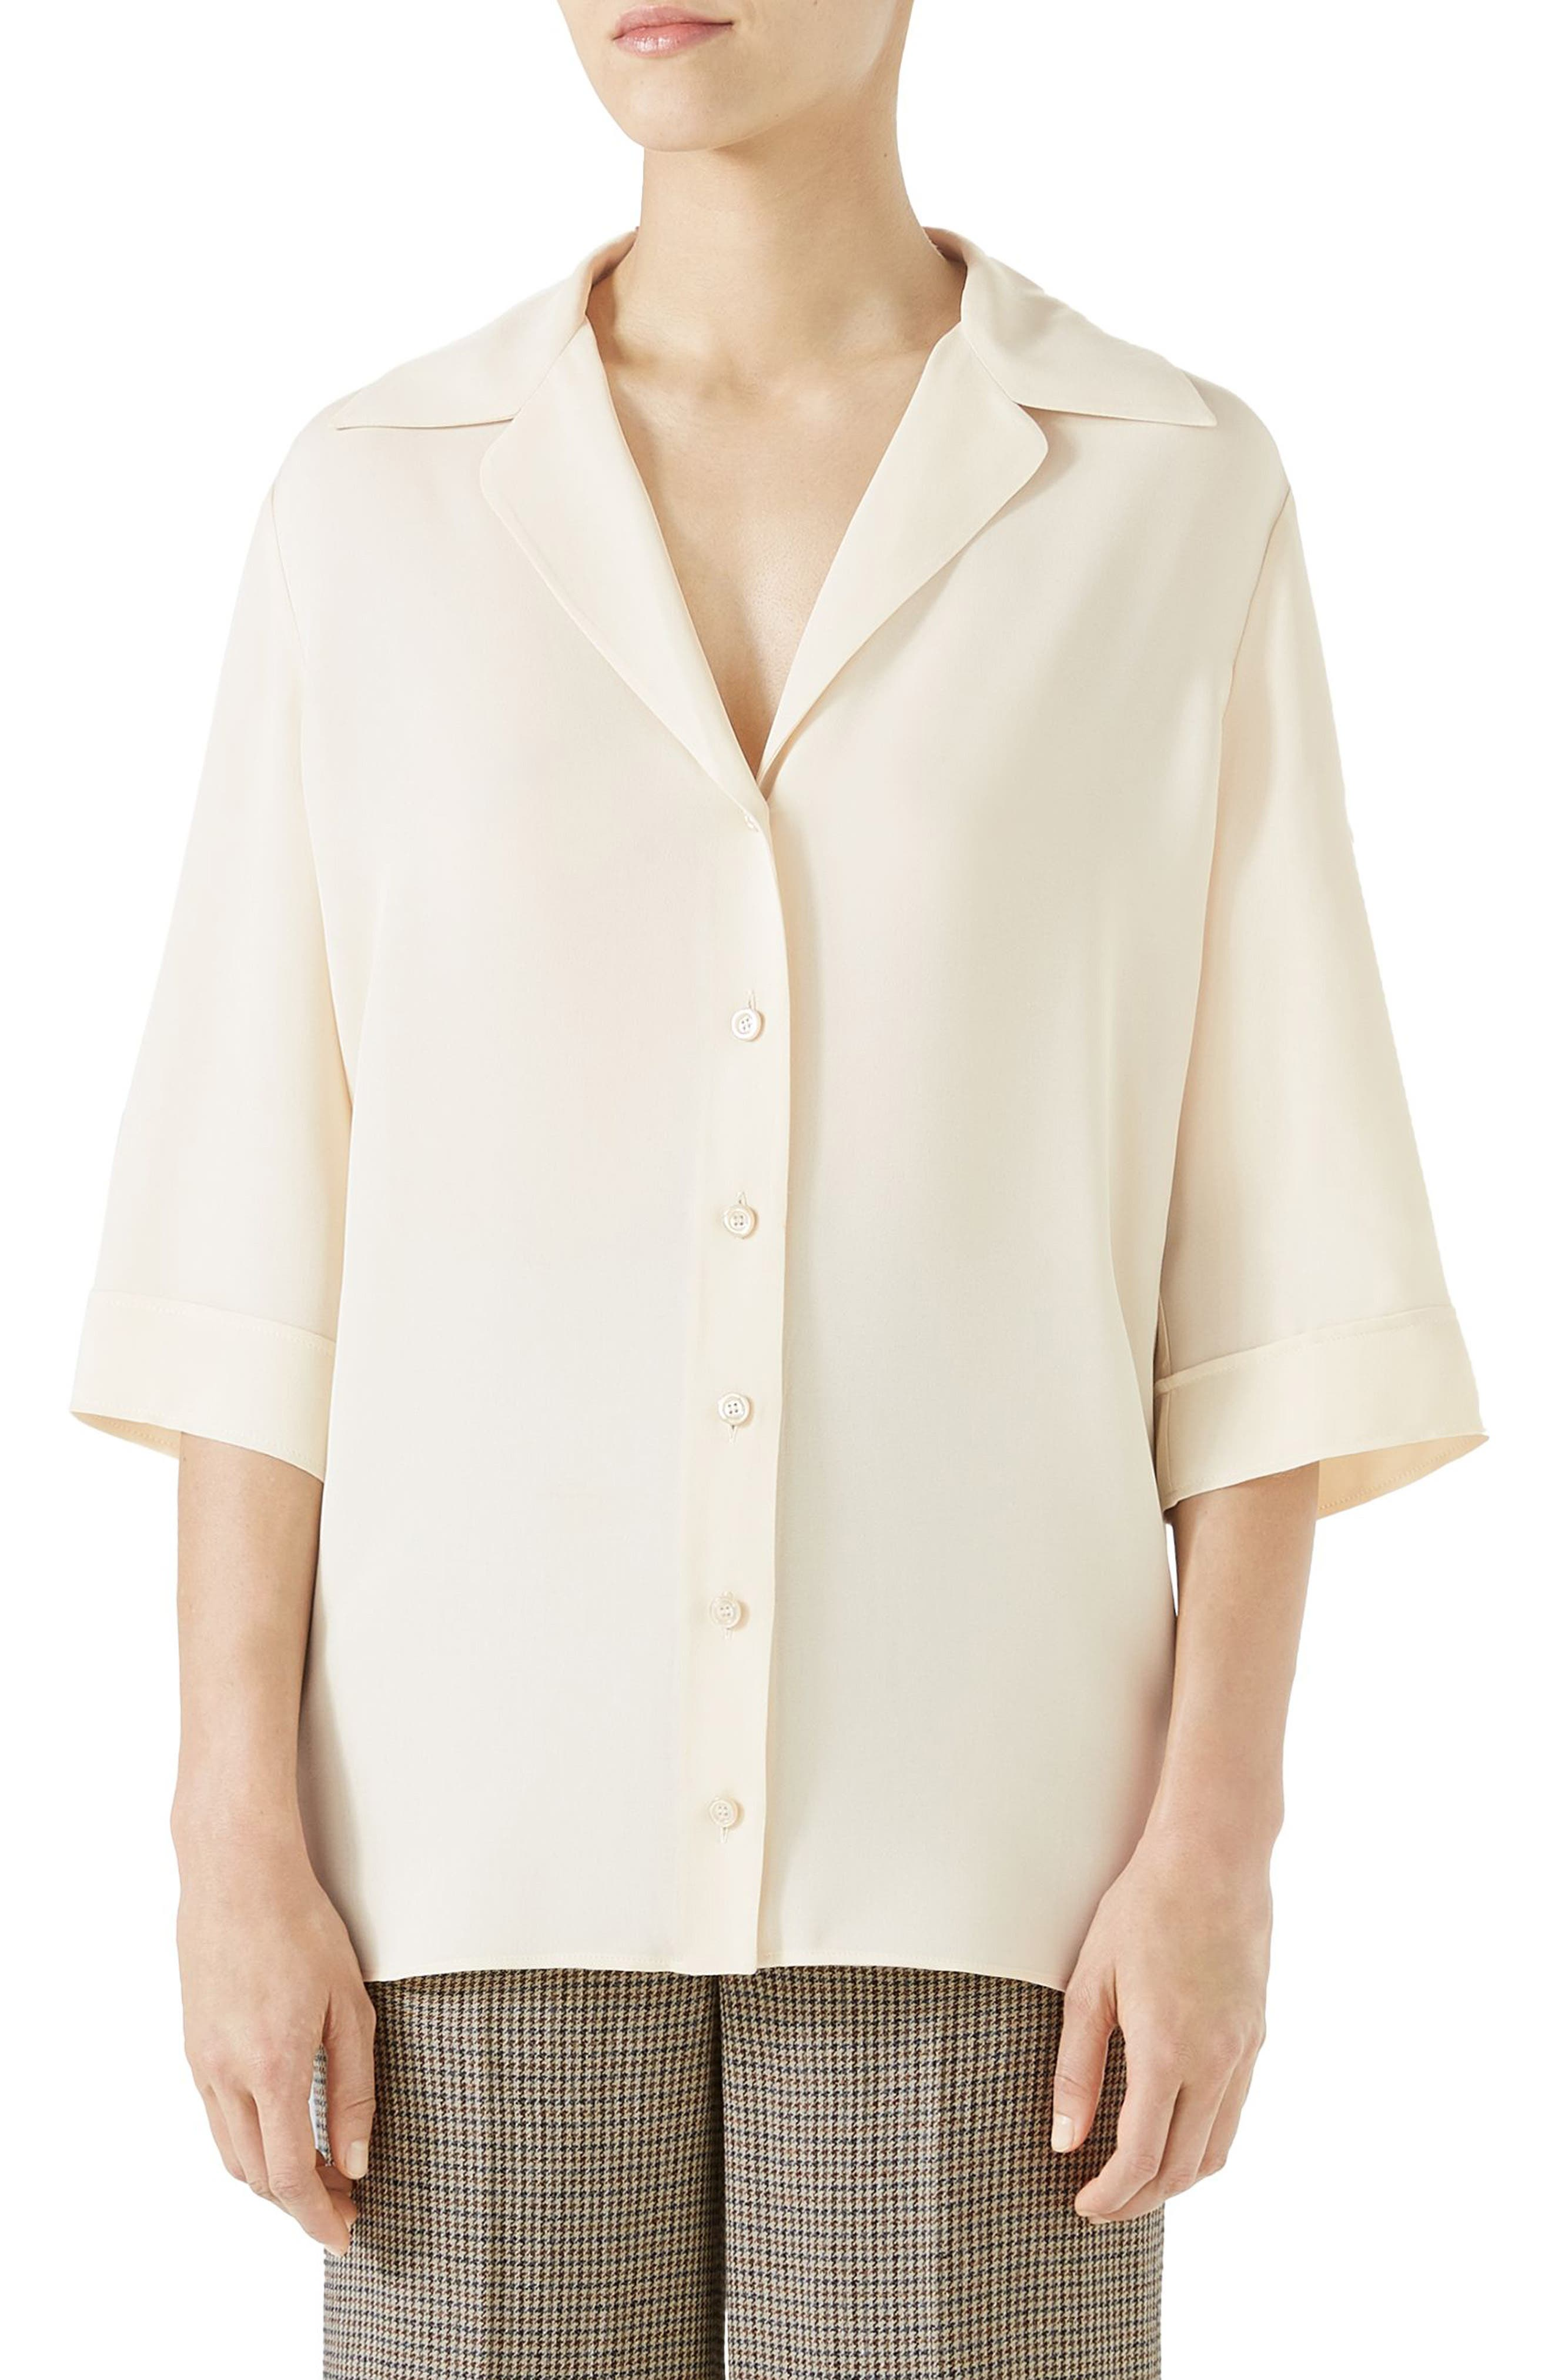 Hypnotism Button-Up Top,                             Main thumbnail 1, color,                             Ivory